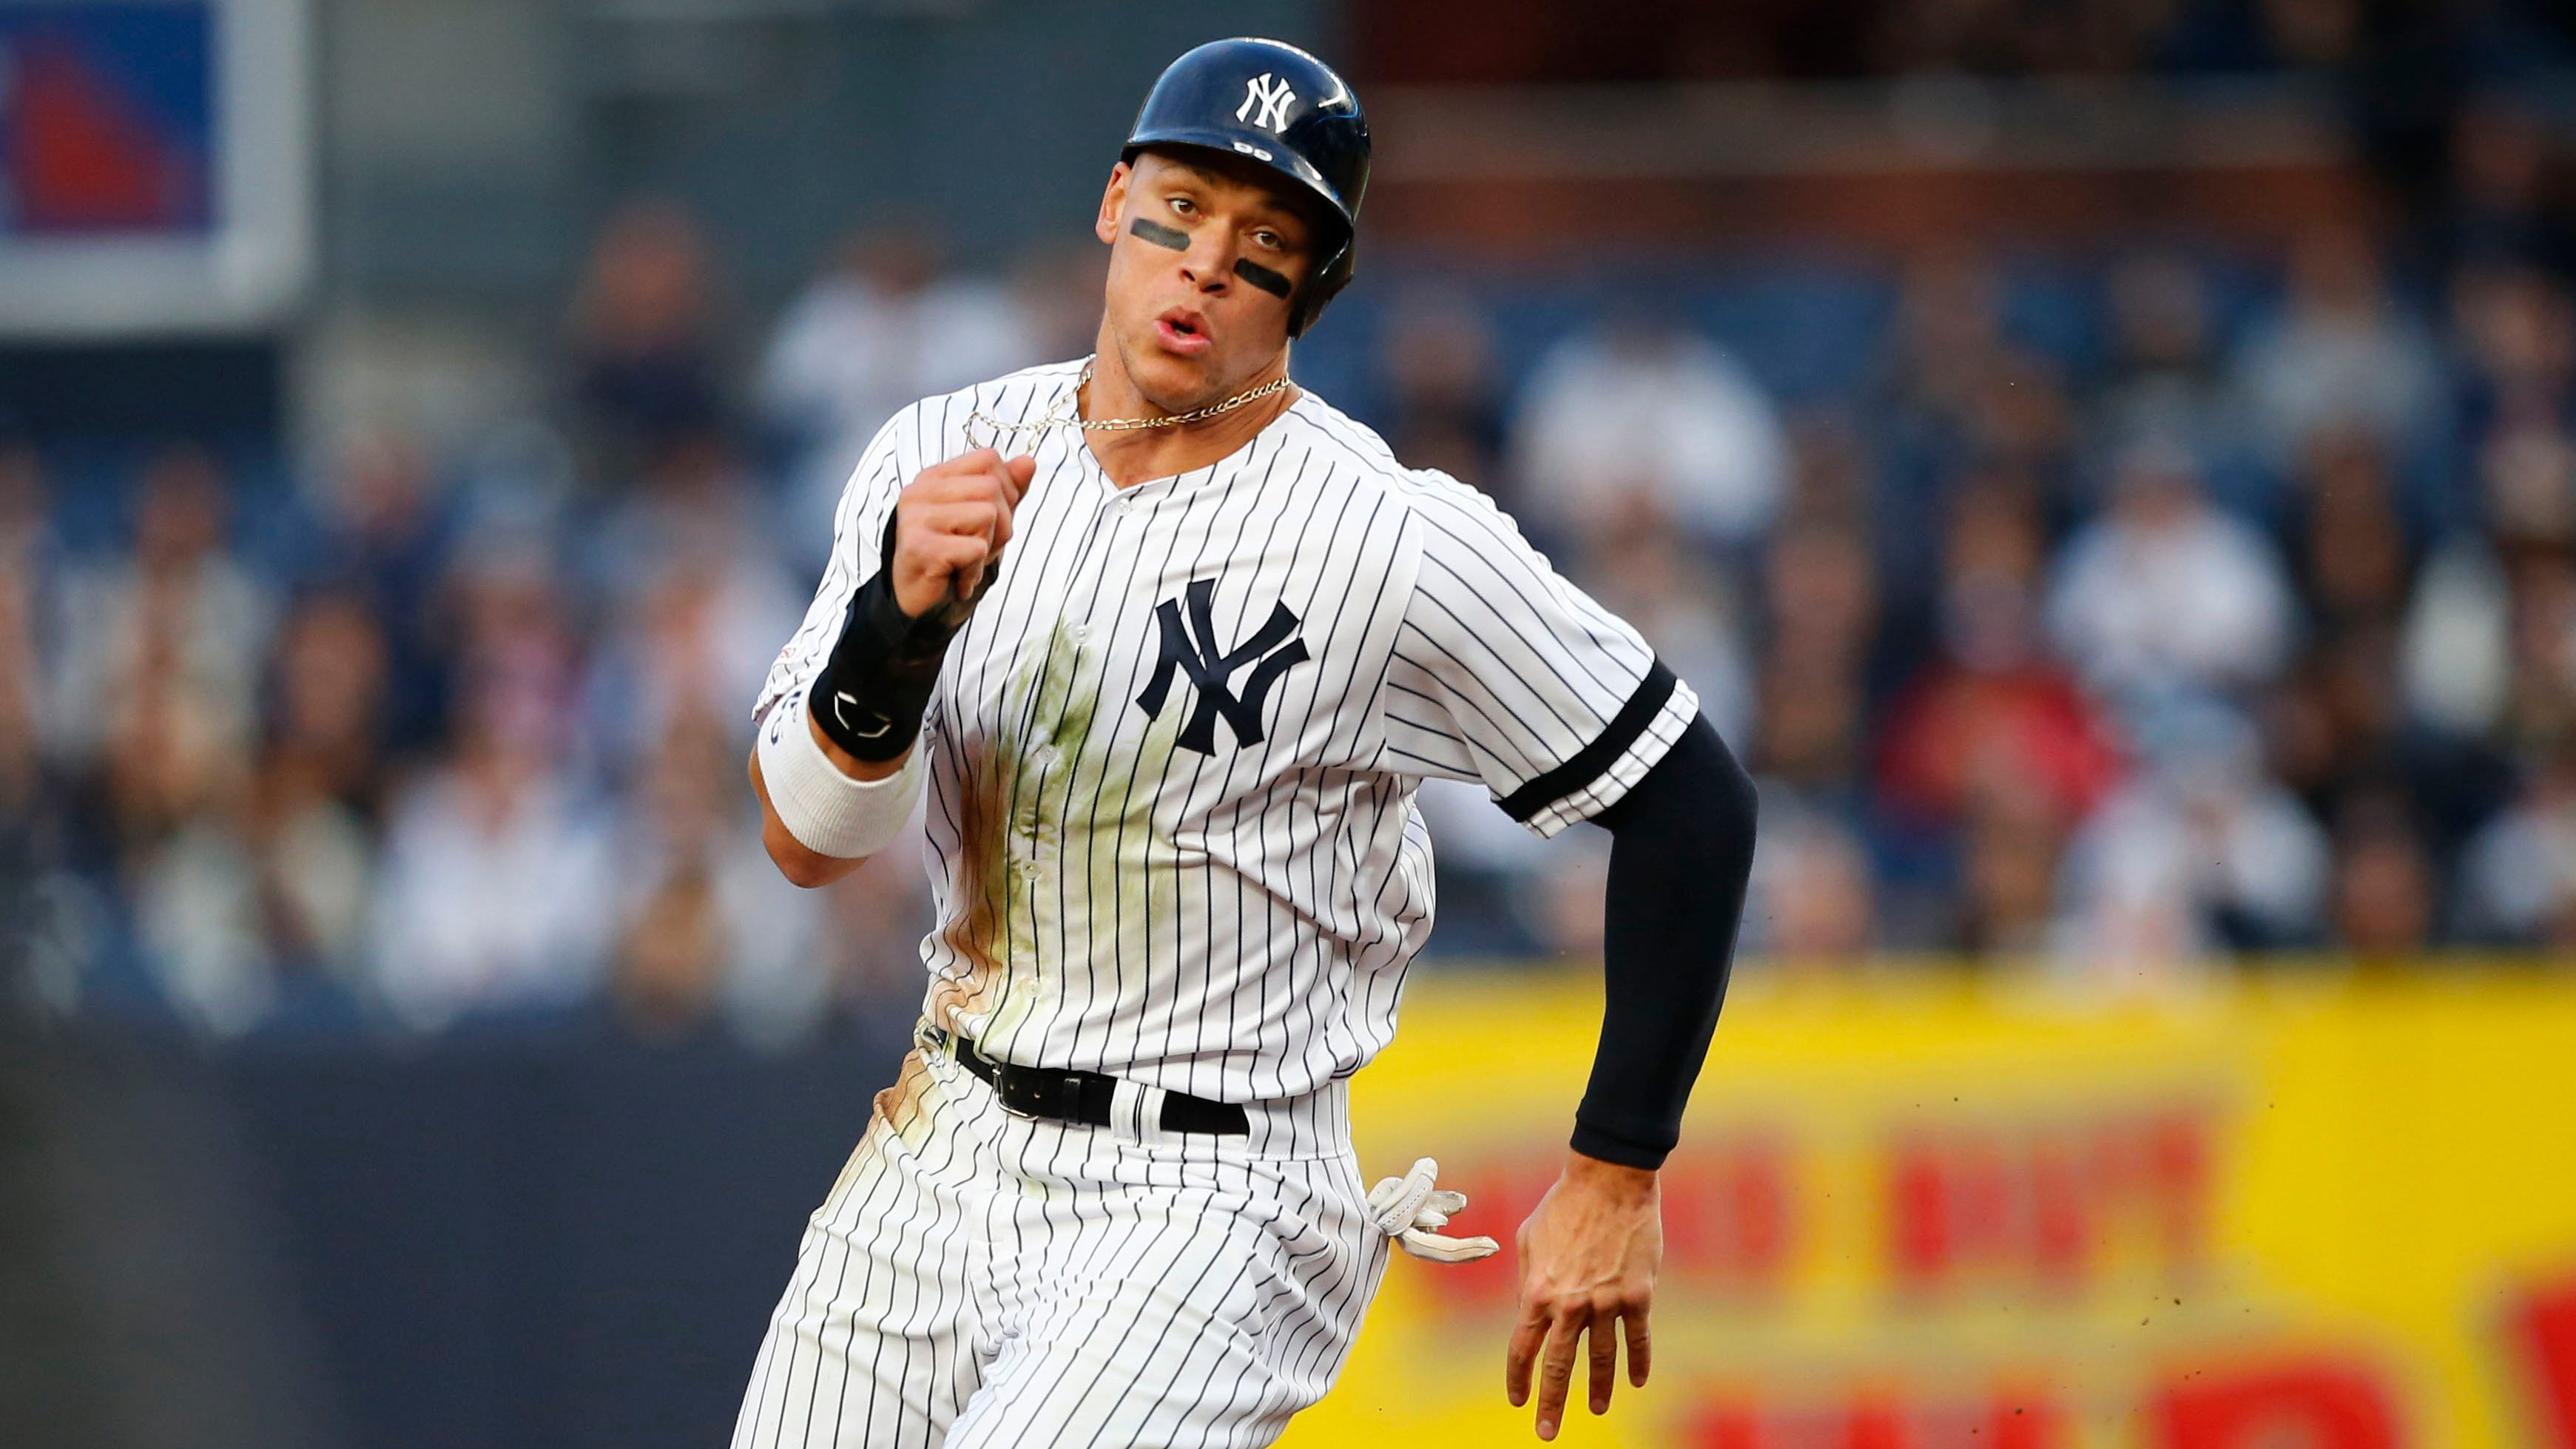 Apr 18, 2019; Bronx, NY, USA; New York Yankees right fielder Aaron Judge (99) runs to third base during the first inning against the Kansas City Royals at Yankee Stadium.